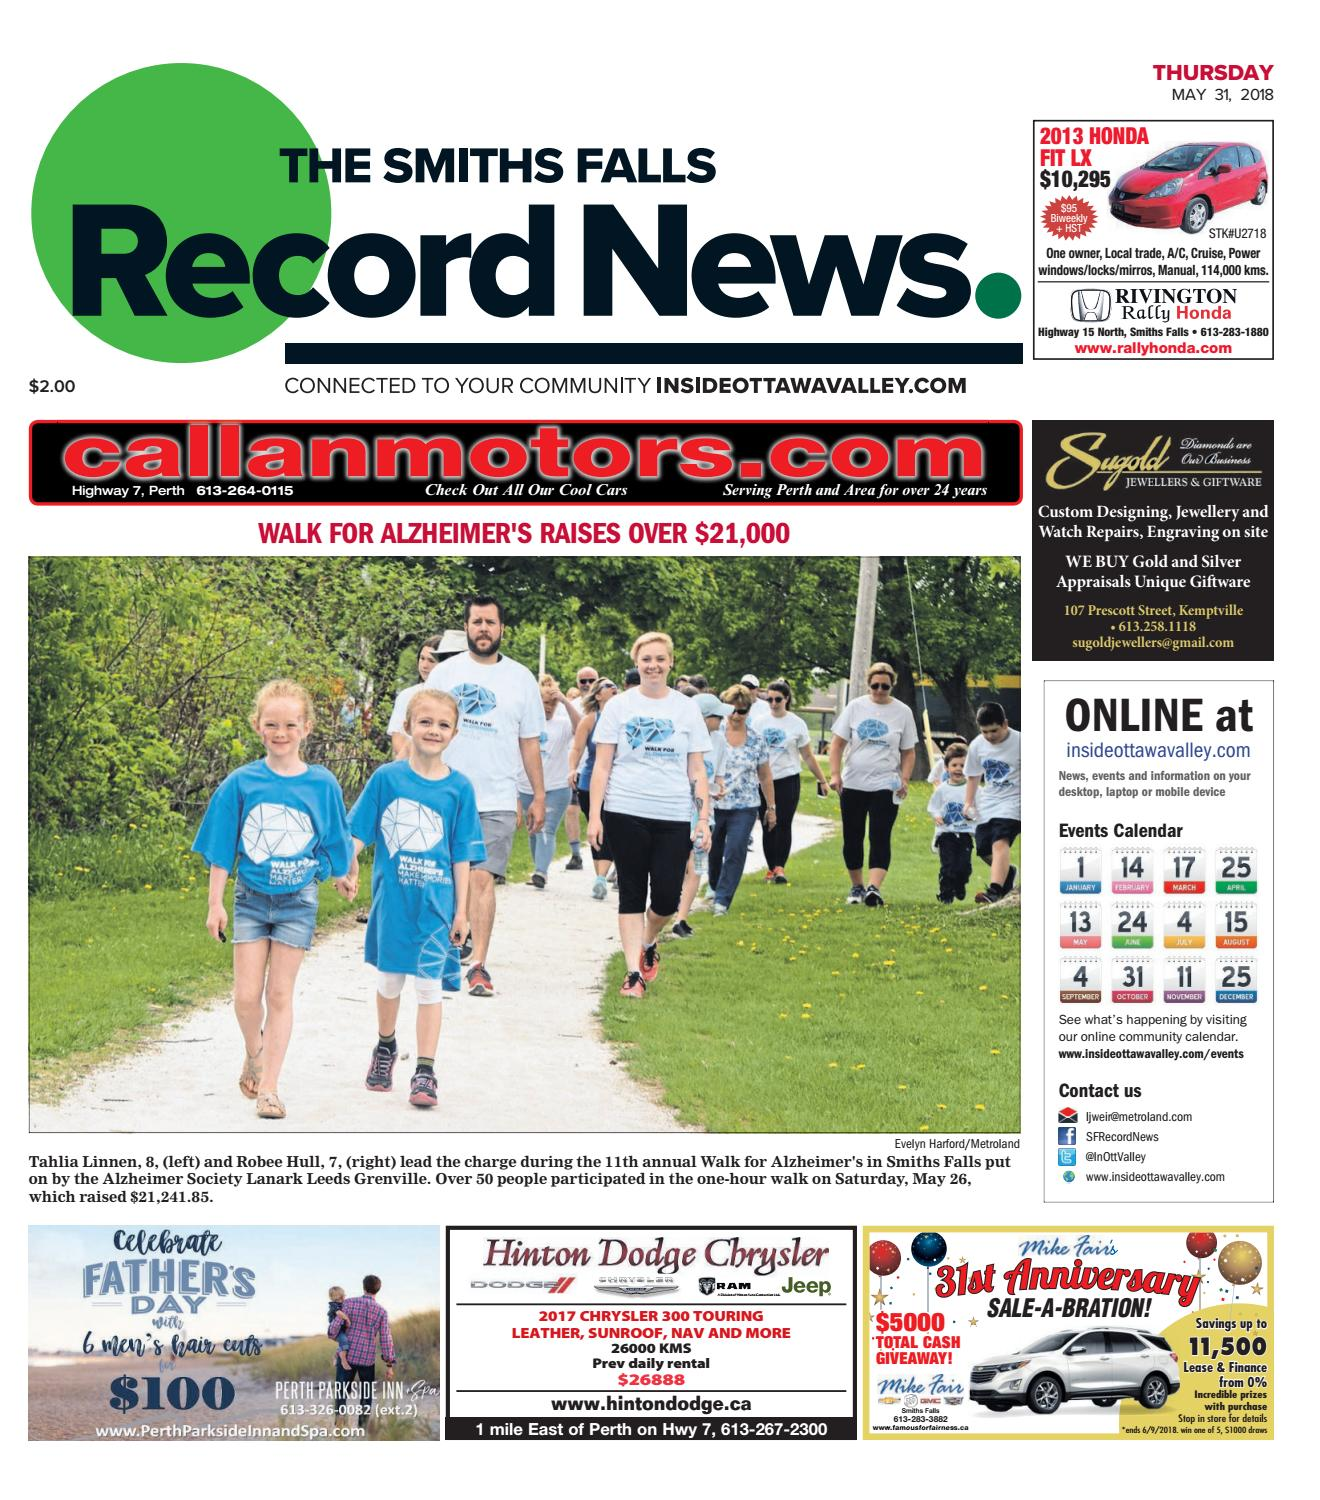 Otv s a 20180531 by Metroland East - Smiths Falls Record News - issuu be7ea3d51